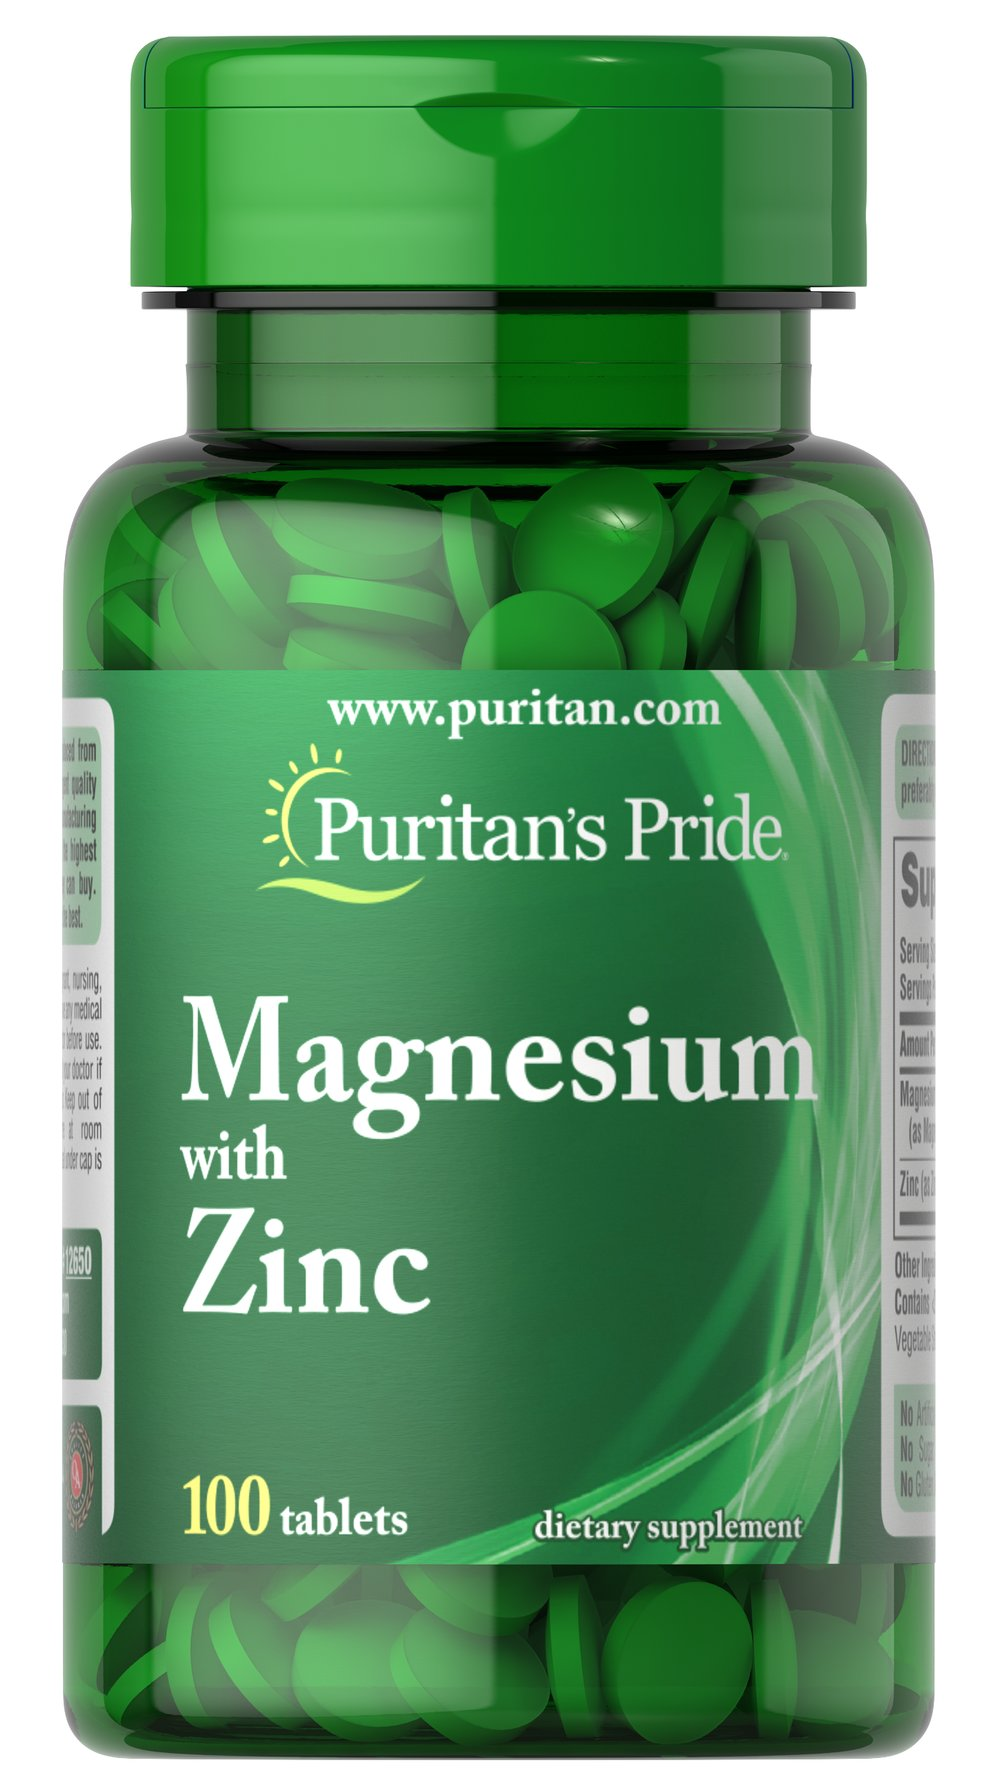 Magnesium with Zinc <p>Minerals are important constituents of any healthy diet.  This supplement is a good source of the Magnesium and Zinc you need everyday for health.** Magnesium helps with bone health, muscle contraction and nervous system promotion.** Zinc is great for immune system health and cell growth.** Together, they make up a quality supplement that ensures a sufficient daily intake of these important nutrients.**</p> 100 Tablets 266 mg/10 mg $5.99